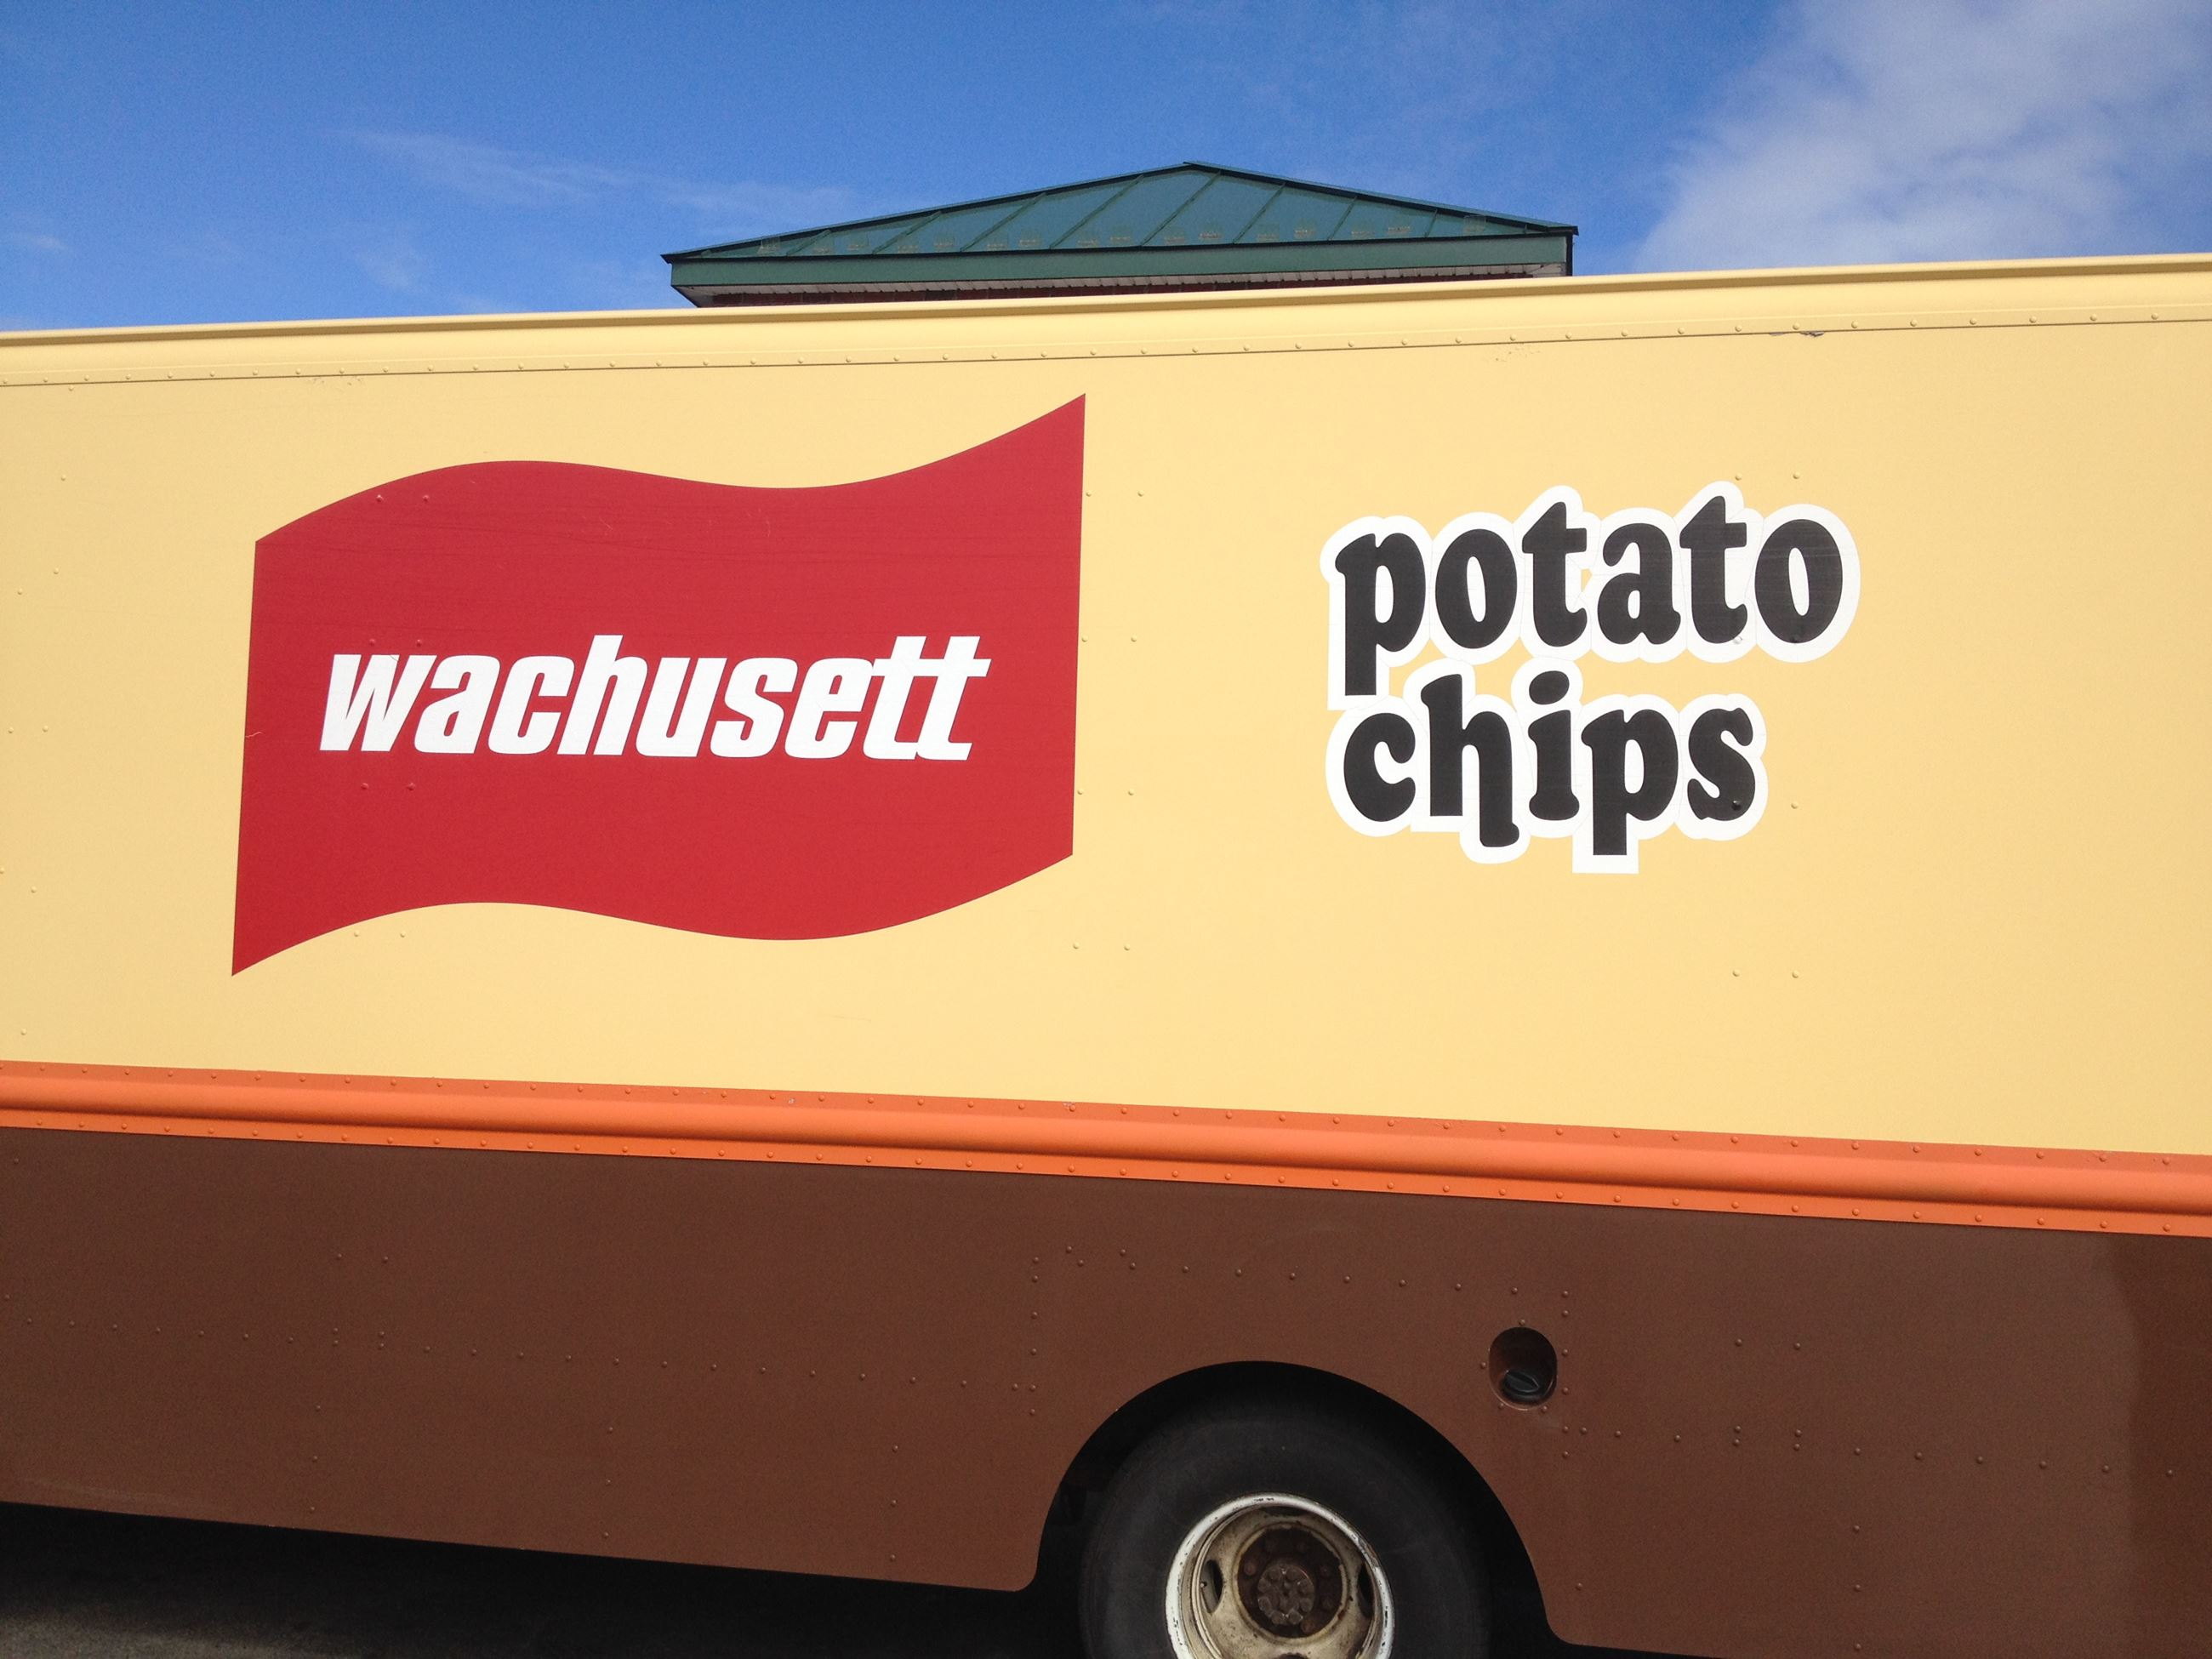 WachusettPotatoChips_Vehicle